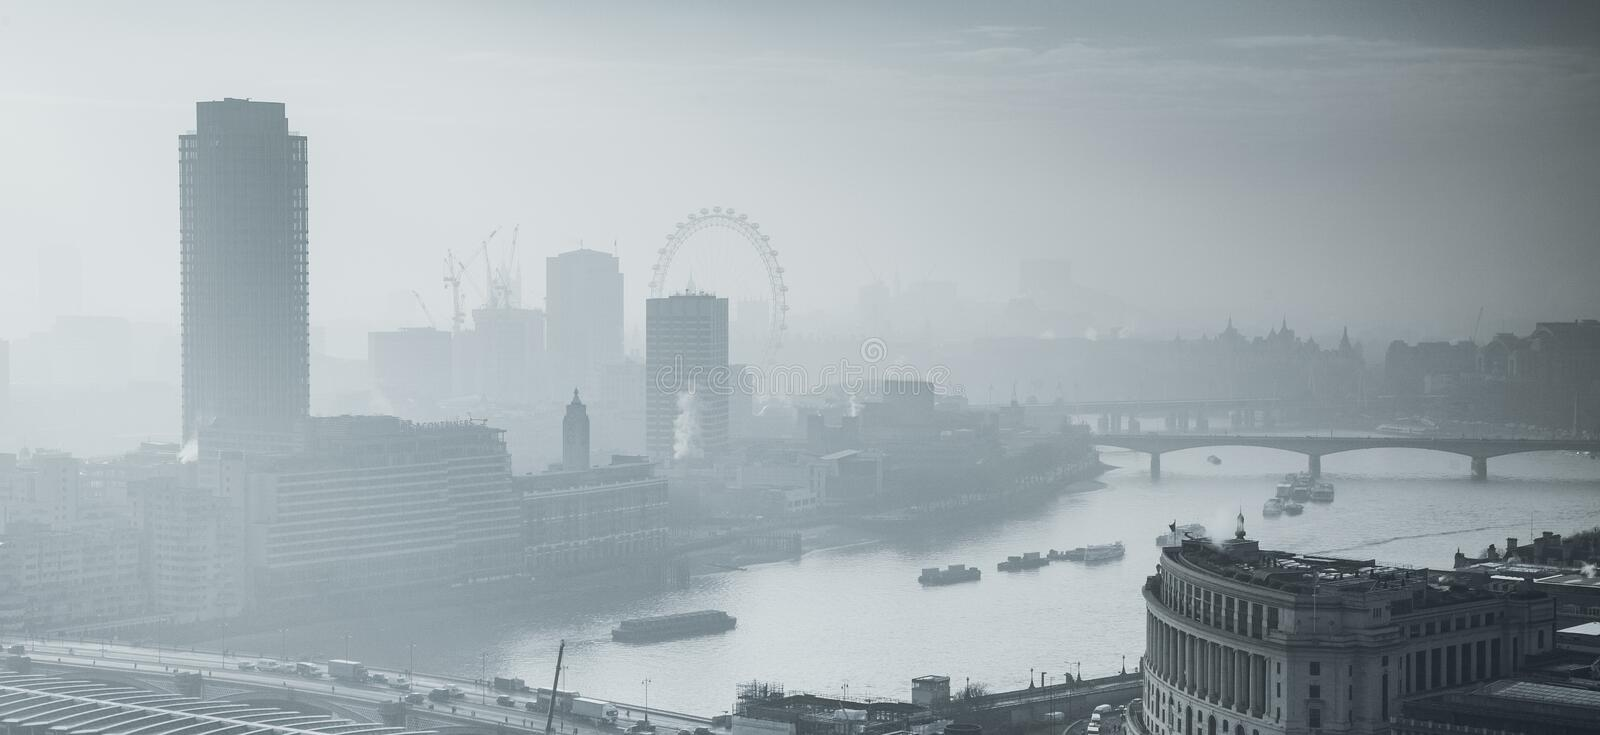 rooftop view over London on a foggy day from St Paul& x27;s cathedral, UK royalty free stock photo